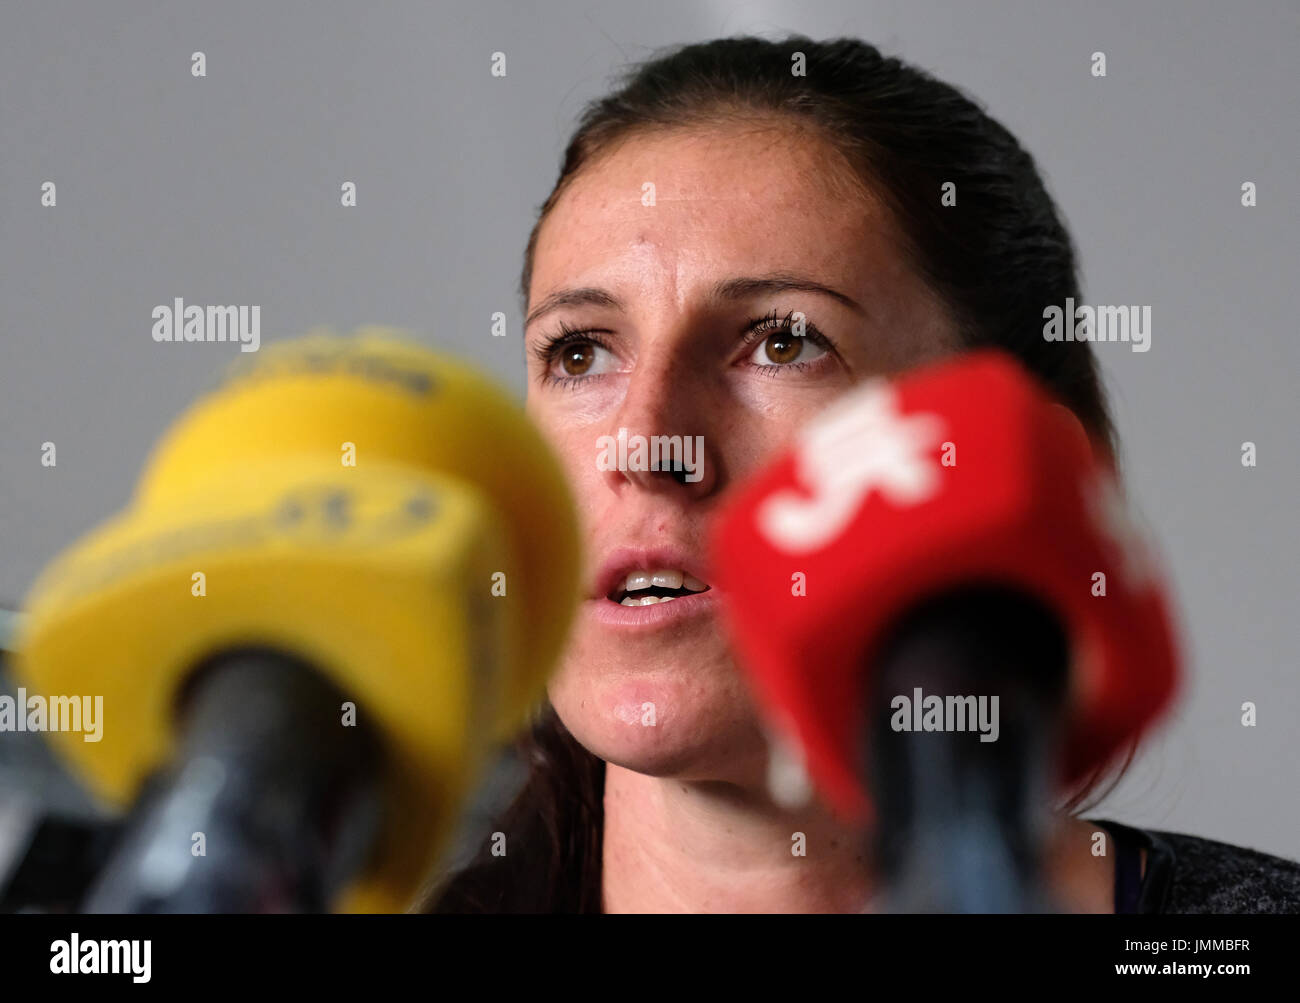 Prague, Czech Republic. 28th July, 2017. Czech athlete Zuzana Hejnova speaks during the press conference prior to the IAAF World Championships London 2017, in Prague, Czech Republic, on July 28, 2017. Credit: Roman Vondrous/CTK Photo/Alamy Live News - Stock Image